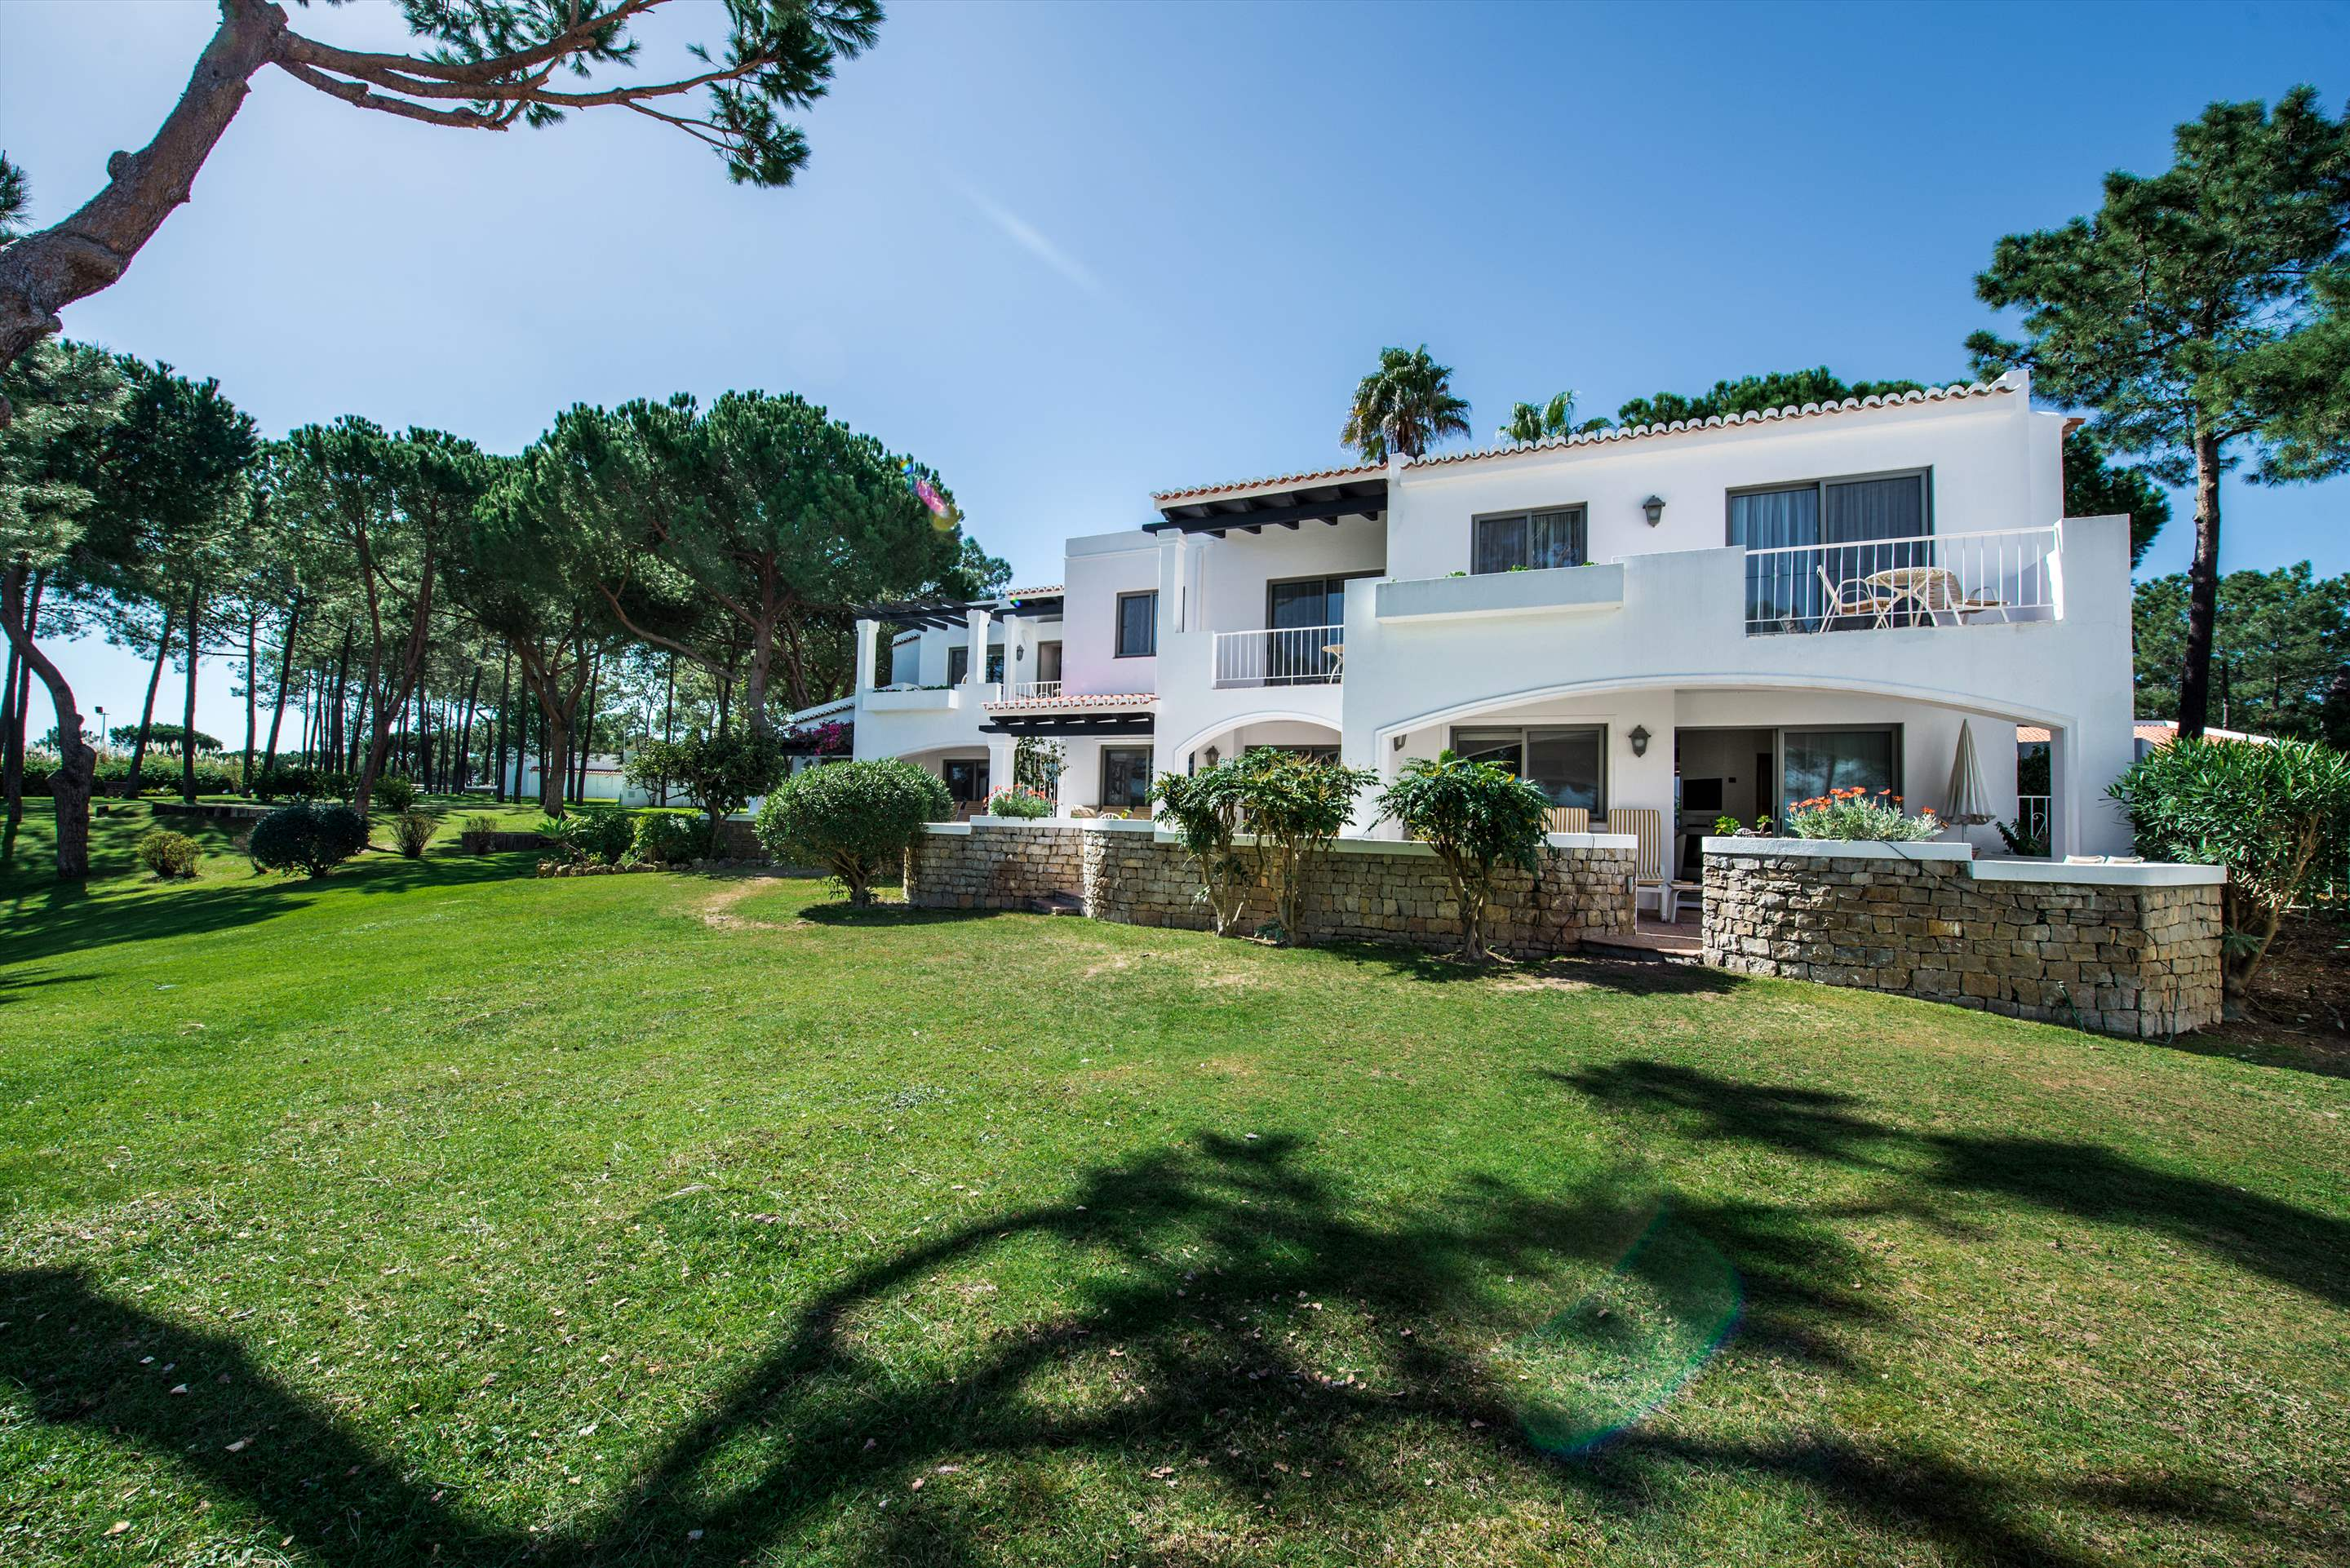 Four Seasons Country Club 1 bed, Superior - Sunday Arrival, 1 bedroom apartment in Four Seasons Country Club, Algarve